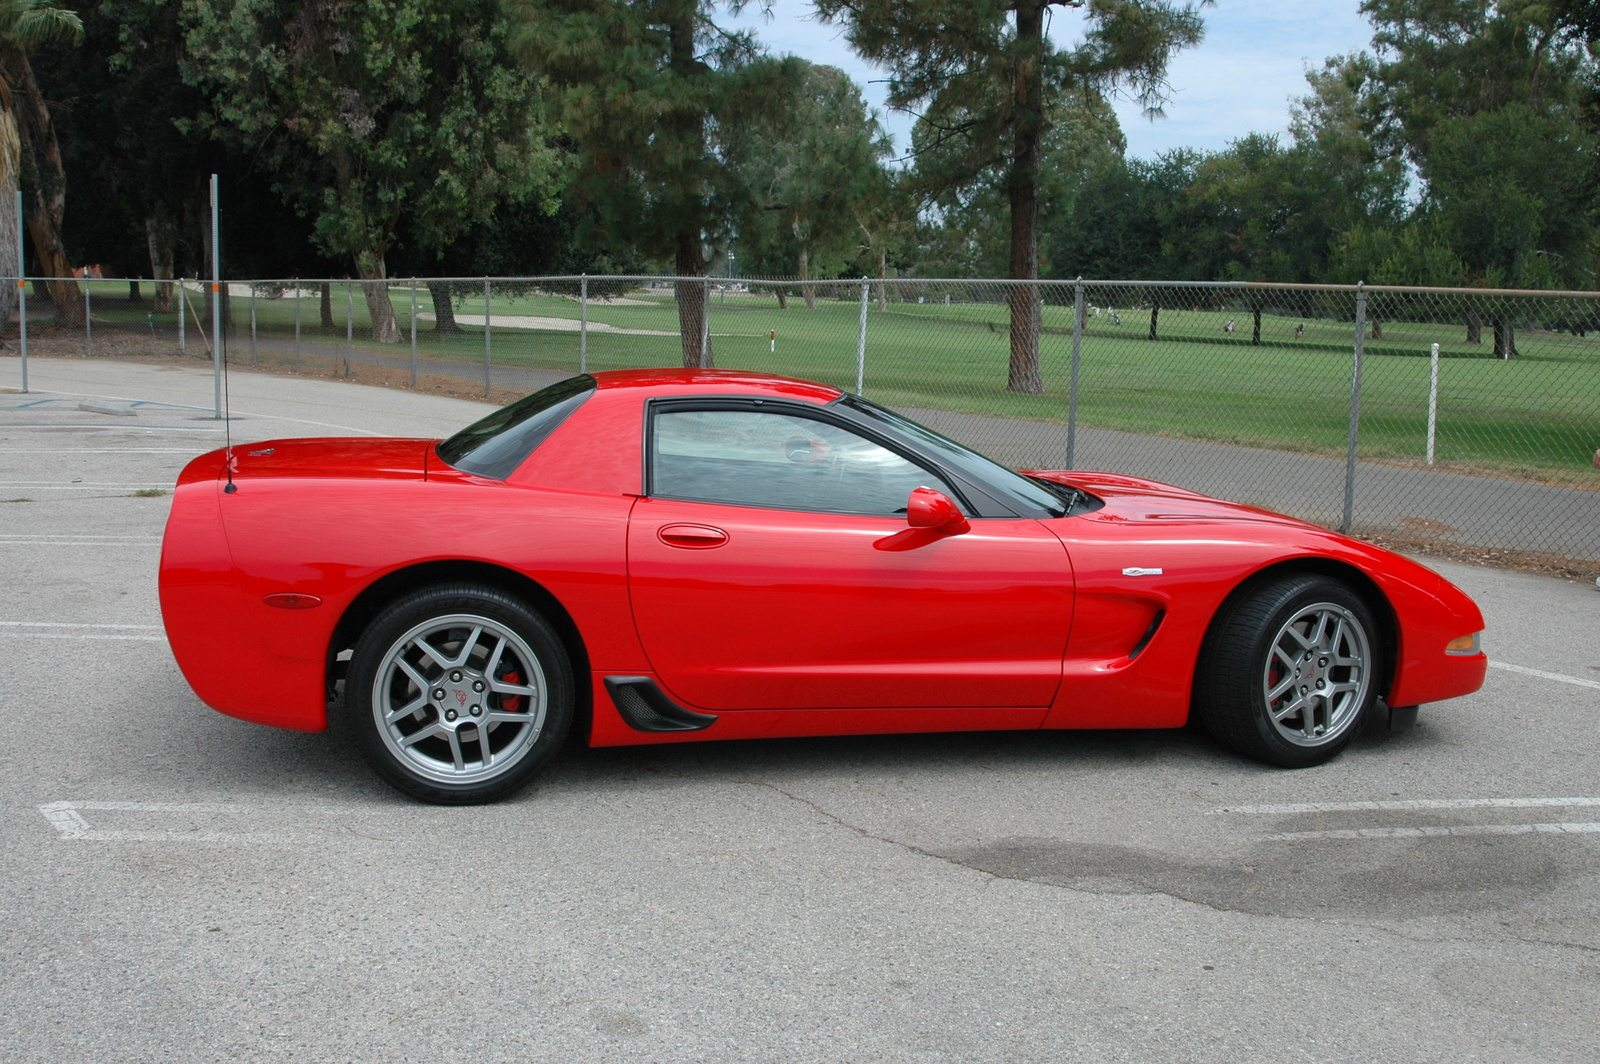 cbfe288d9d37bfc3426caab9b421ec4a 1 2002 c5 corvette ultimate guide (overview, specs, vin info  at virtualis.co